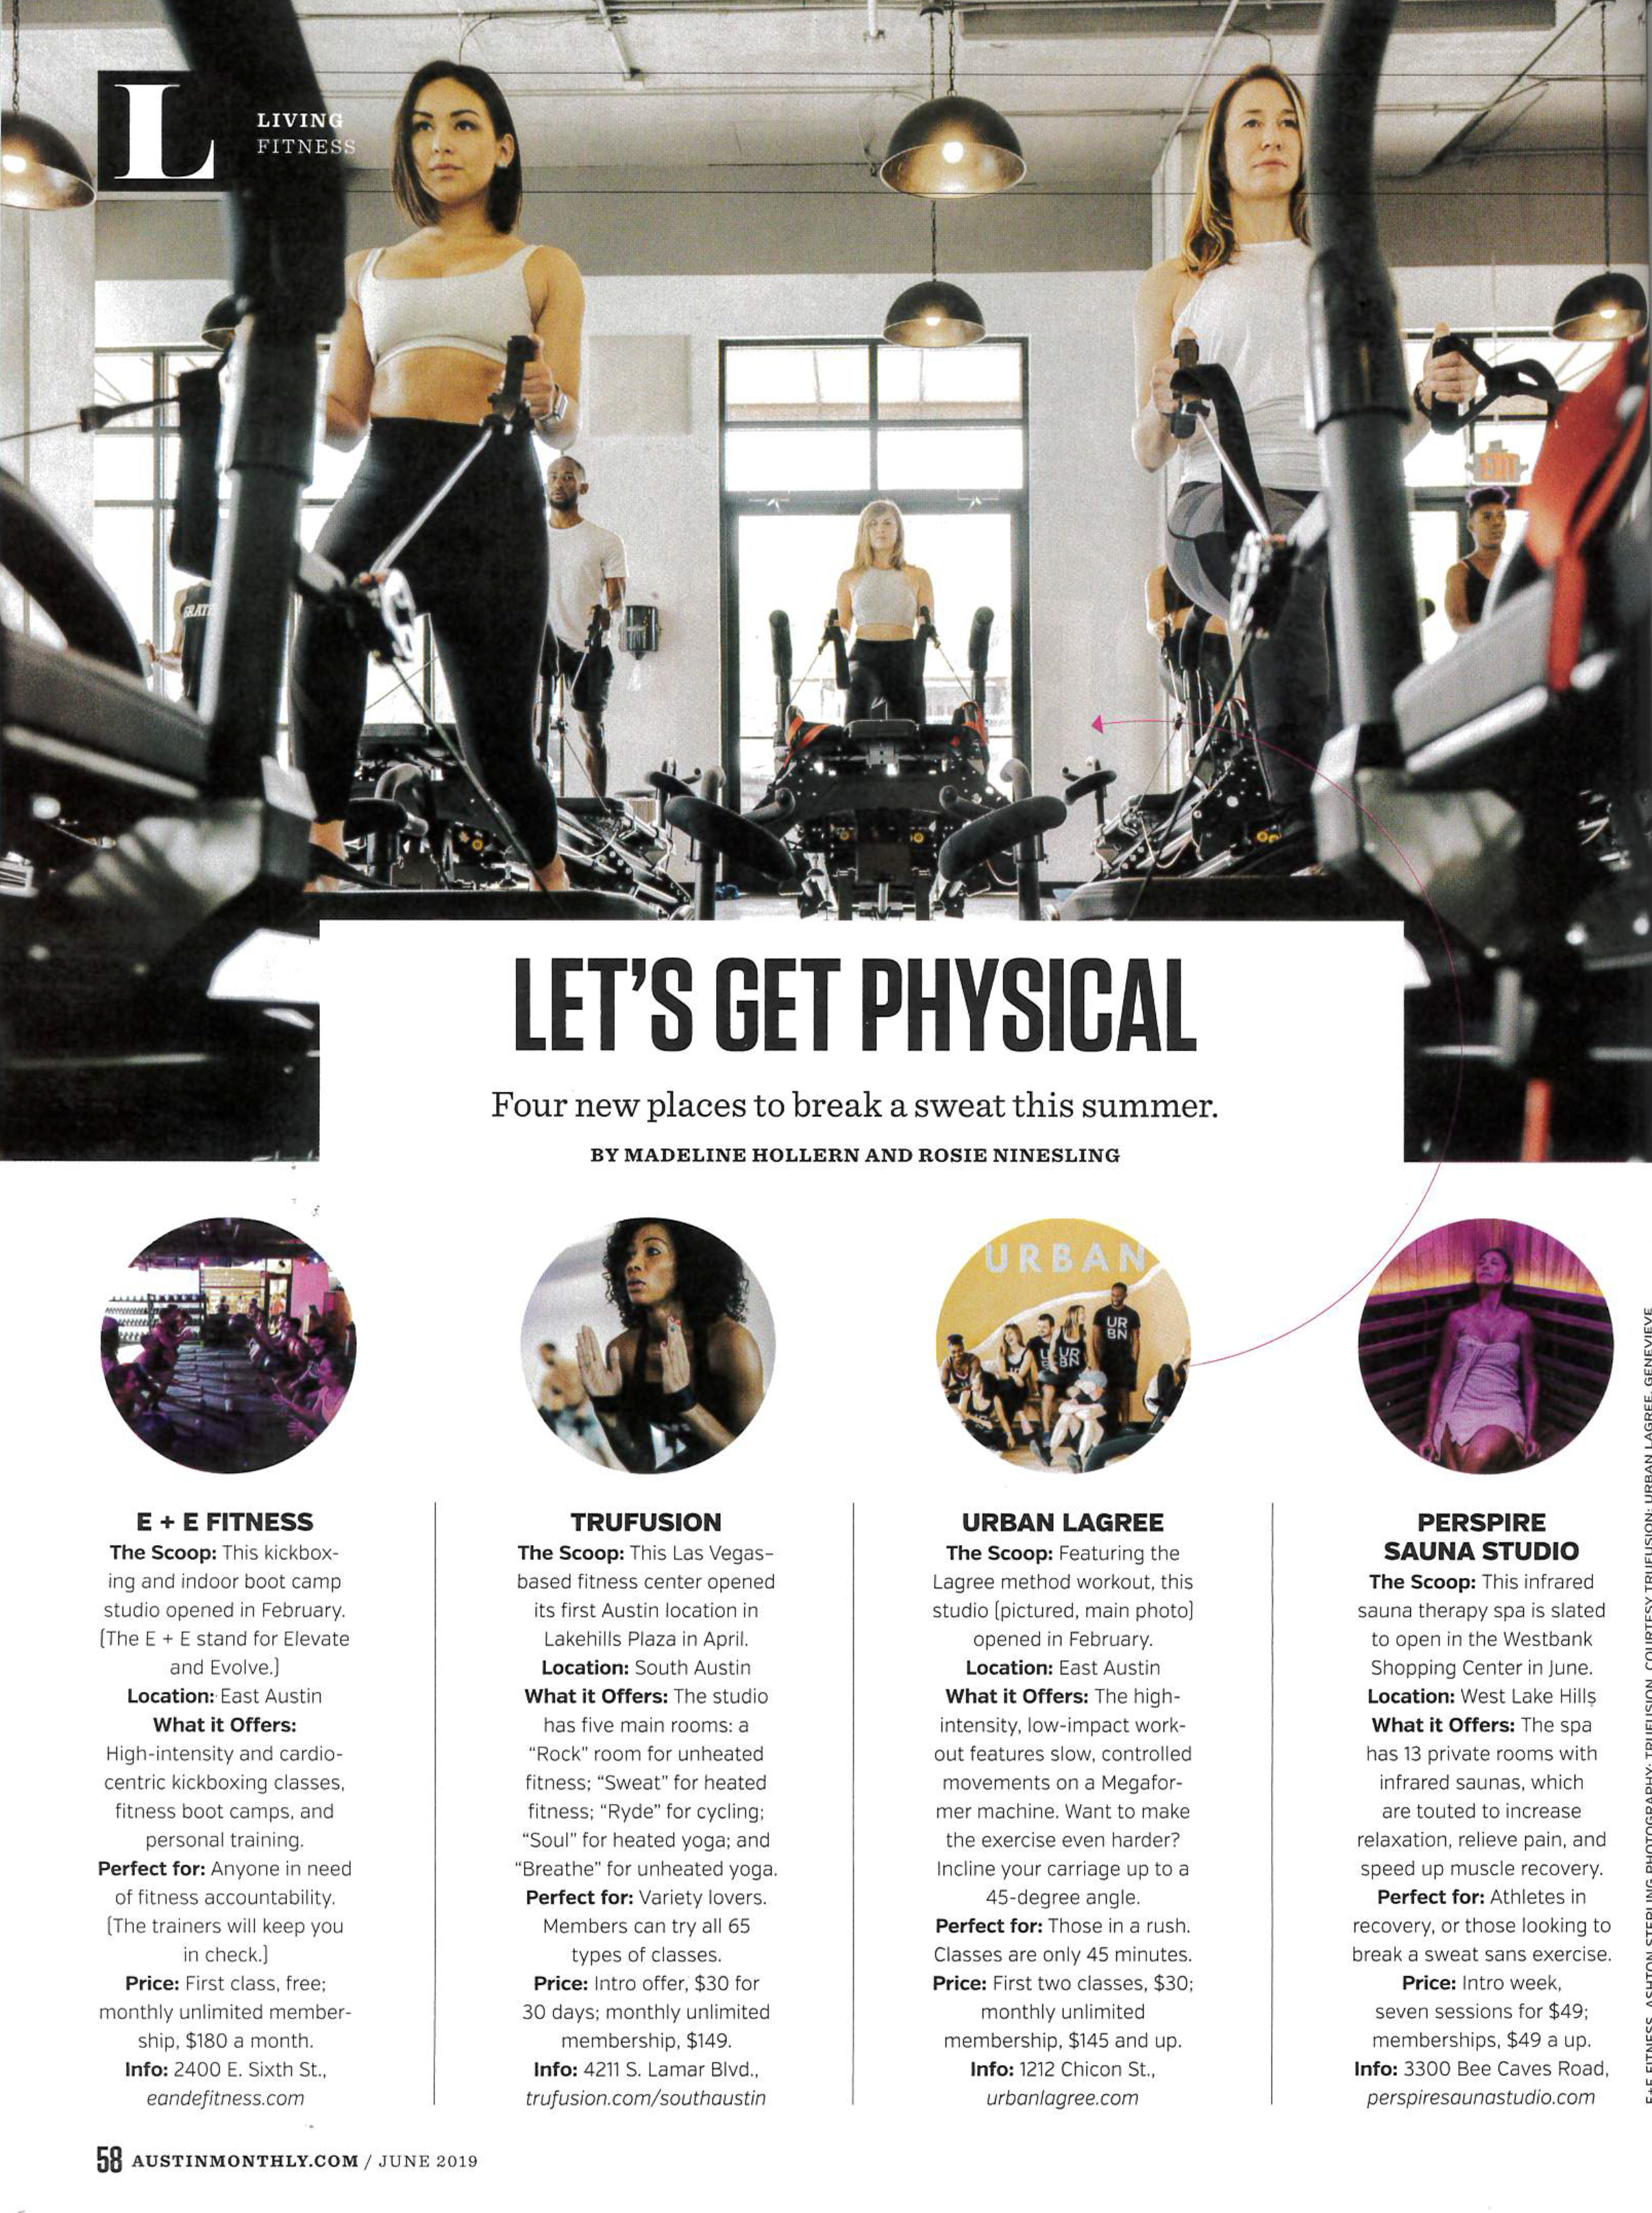 article - 4 new places to break a swear featuring Perspire Sauna Studios